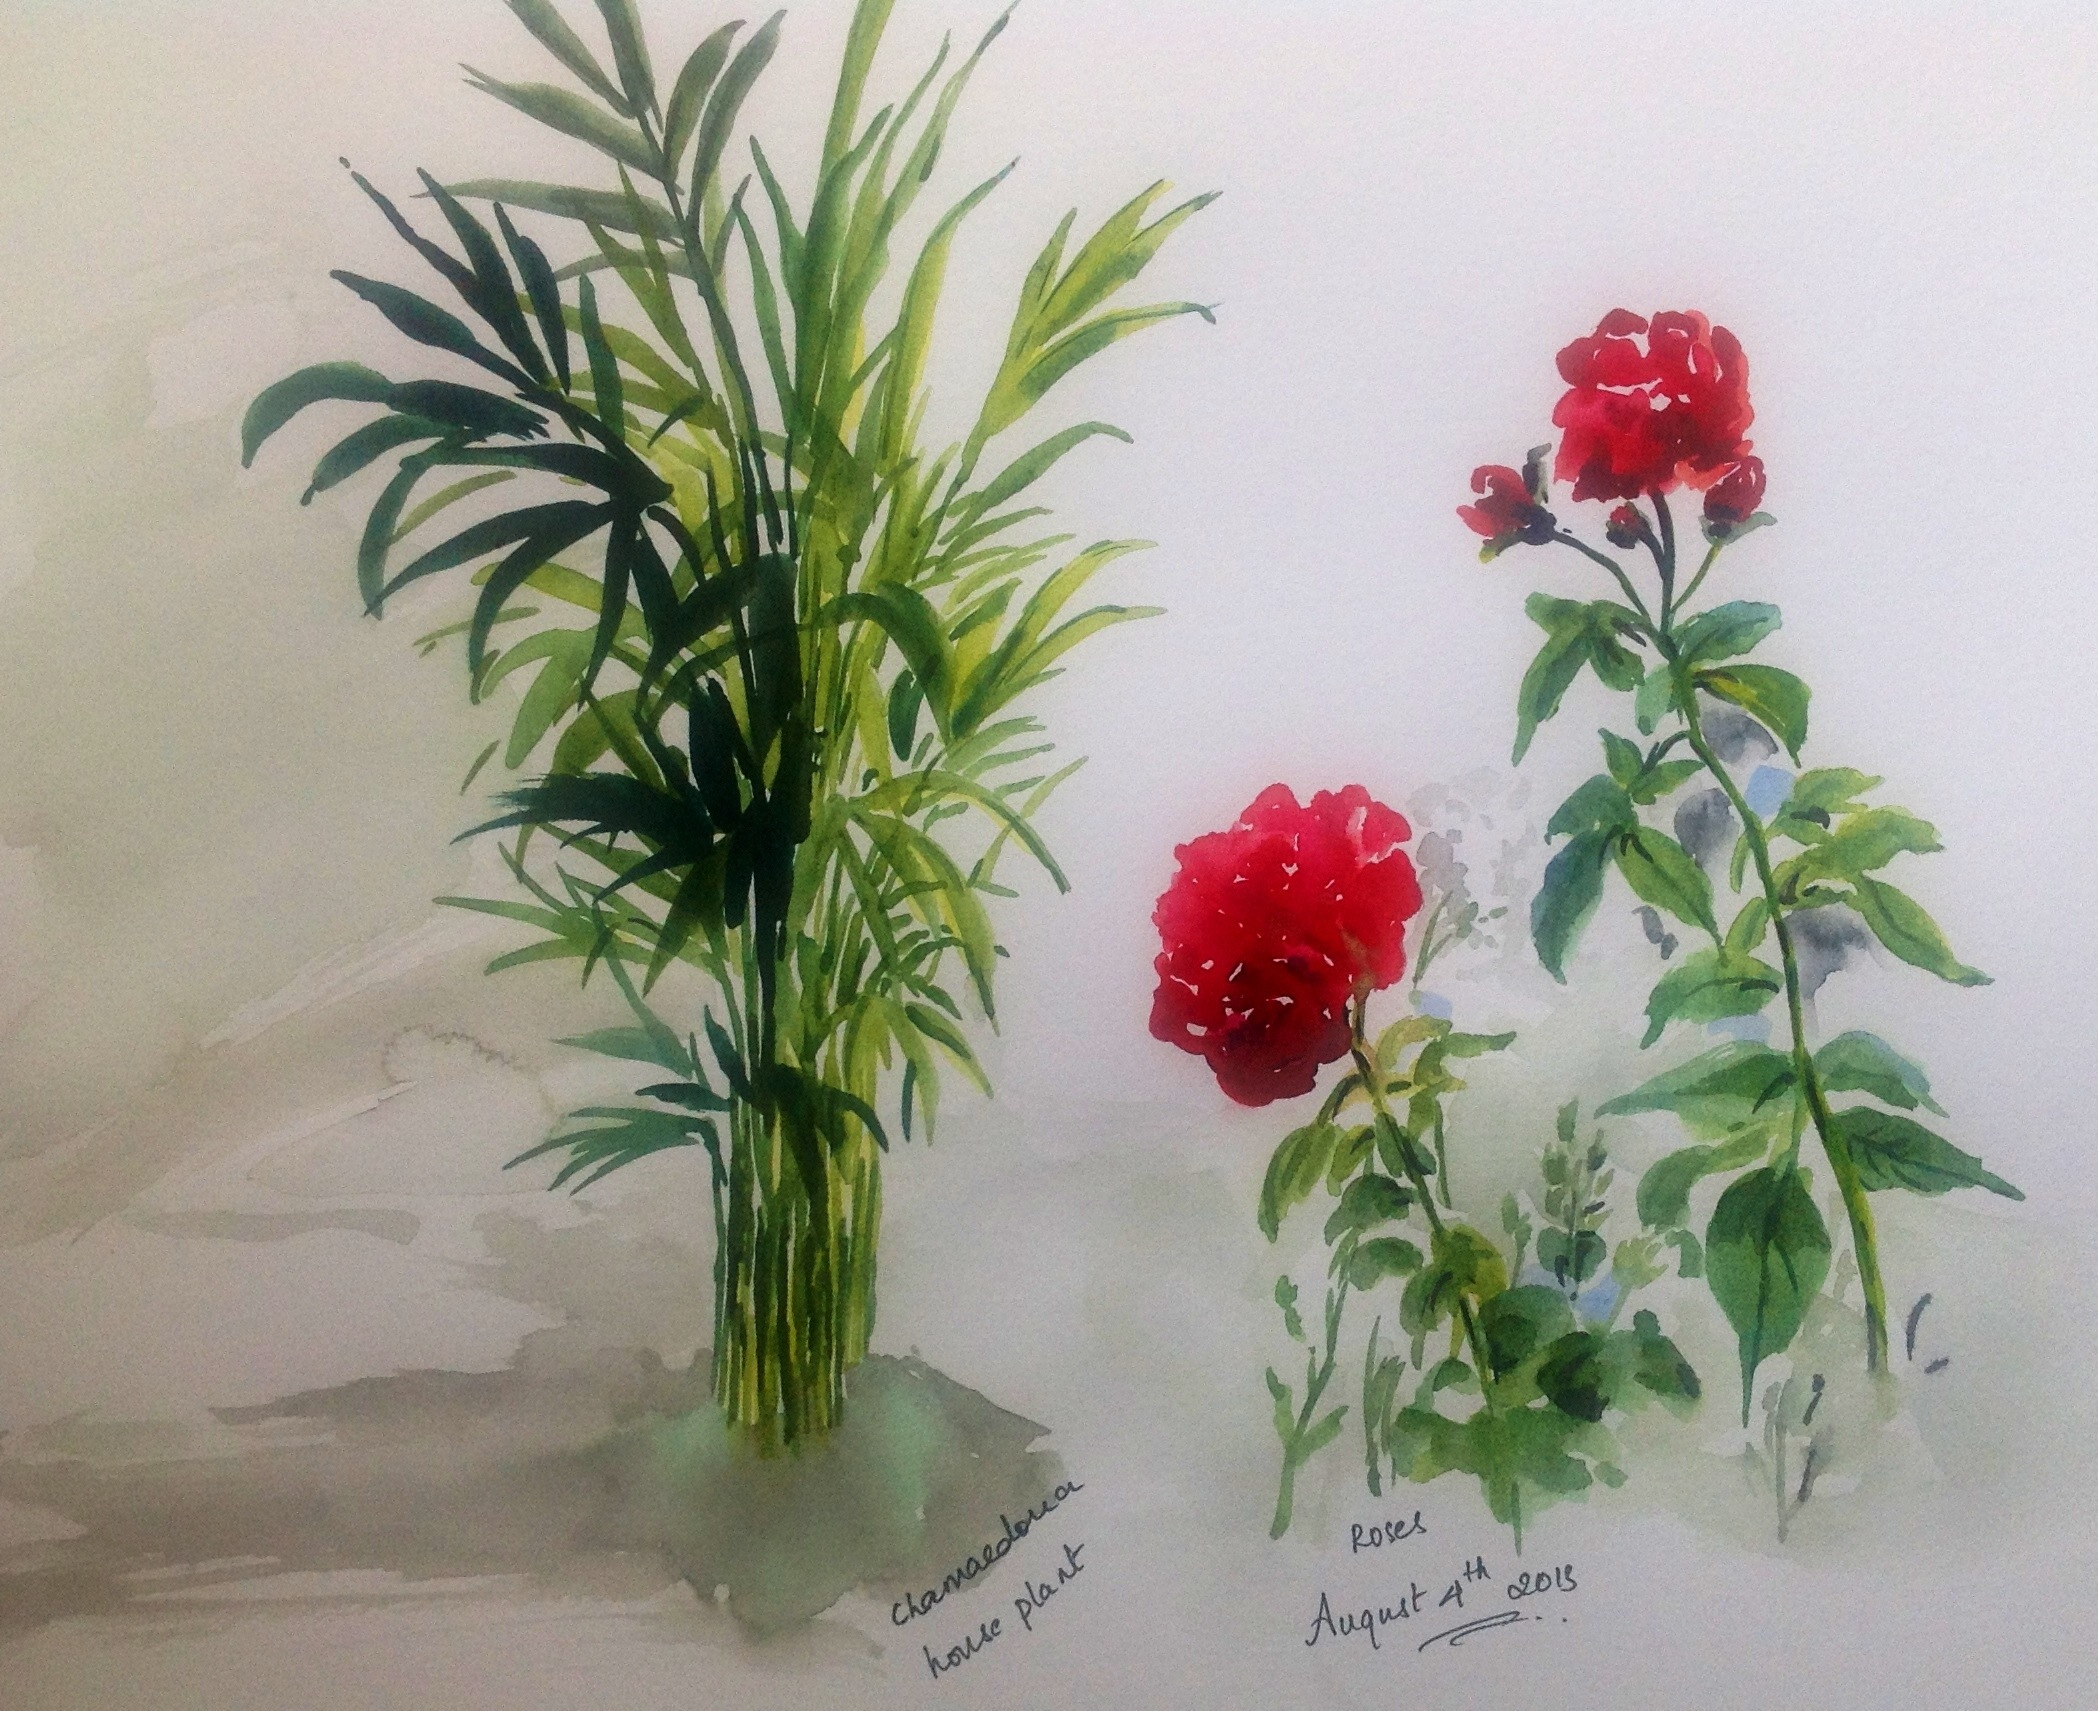 Chamaedorea indoor plant and rose watercolor sketches